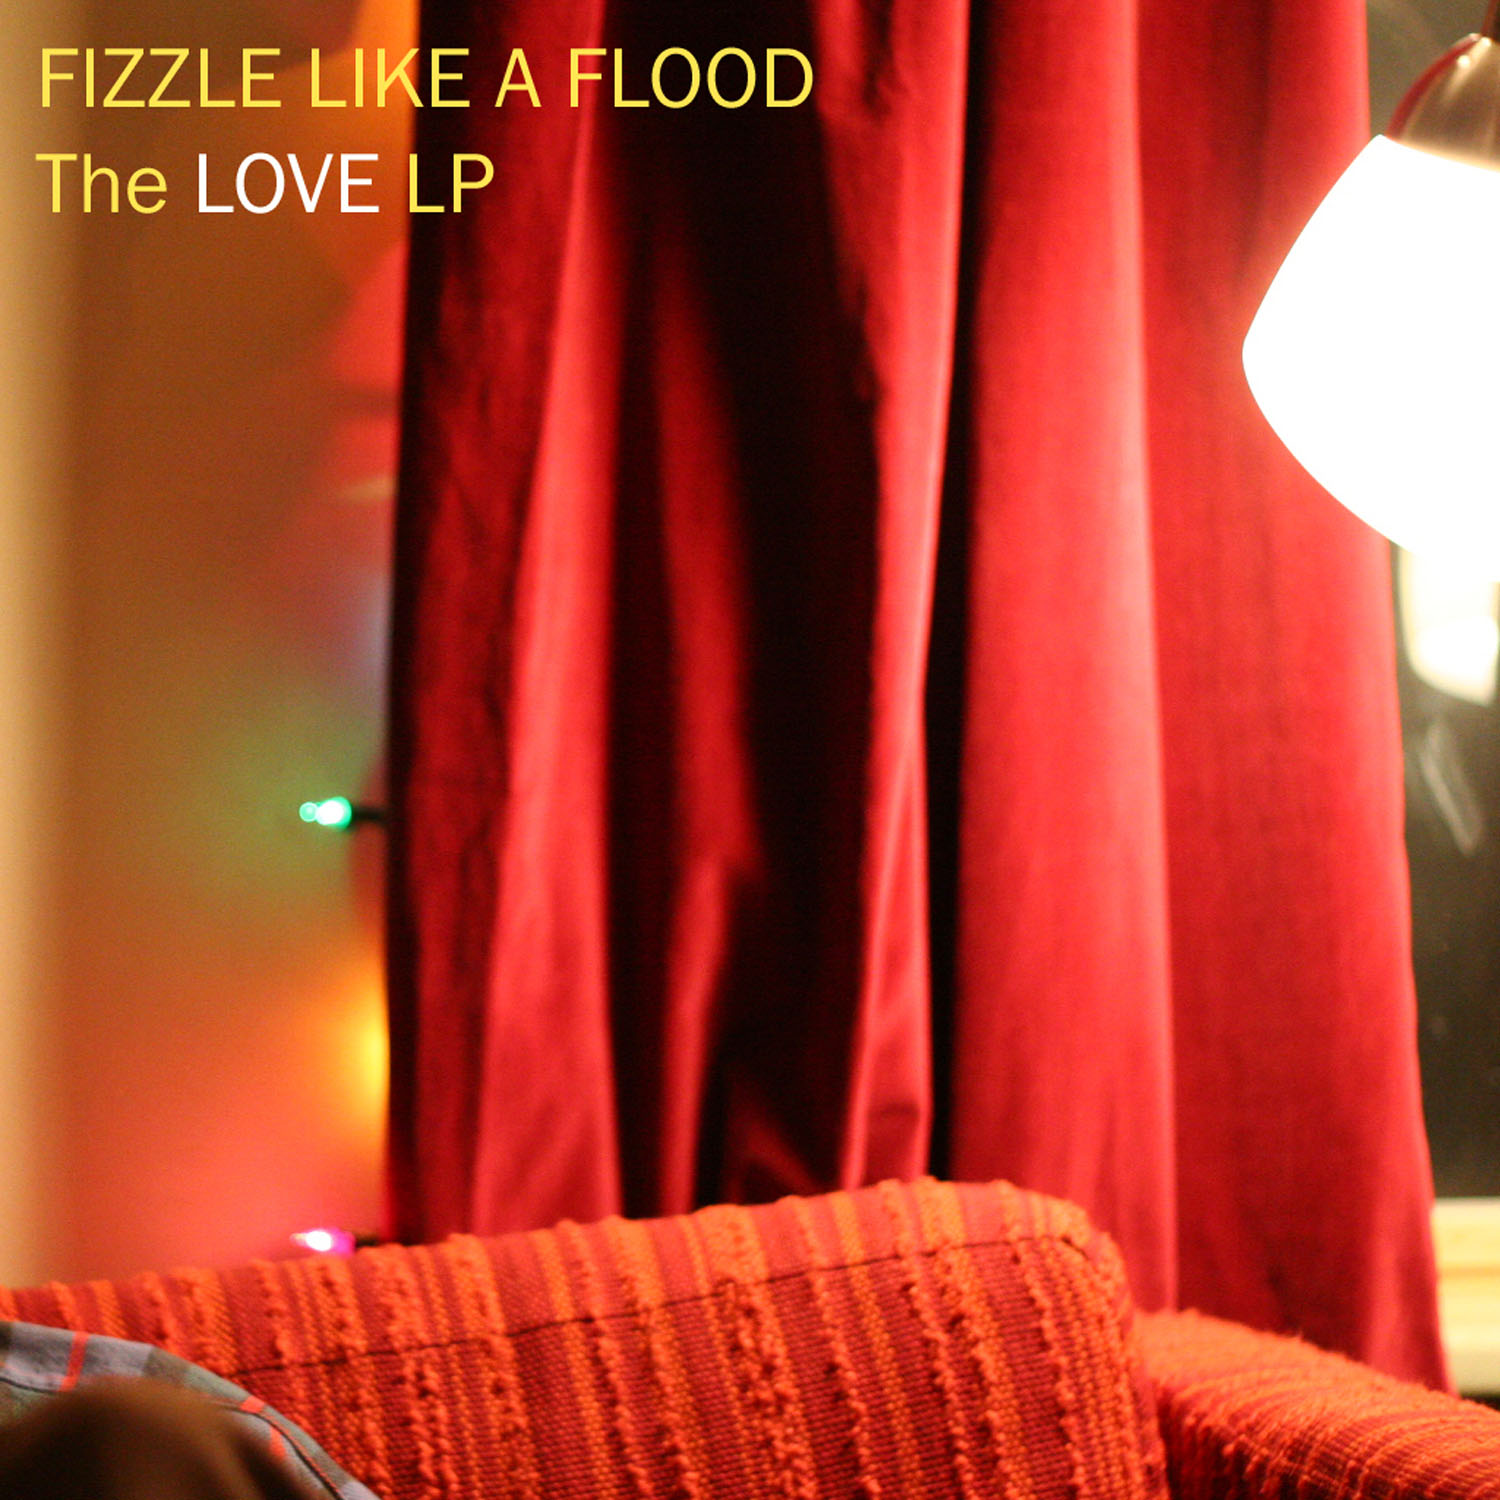 Fizzle Like A Flood - The Love LP